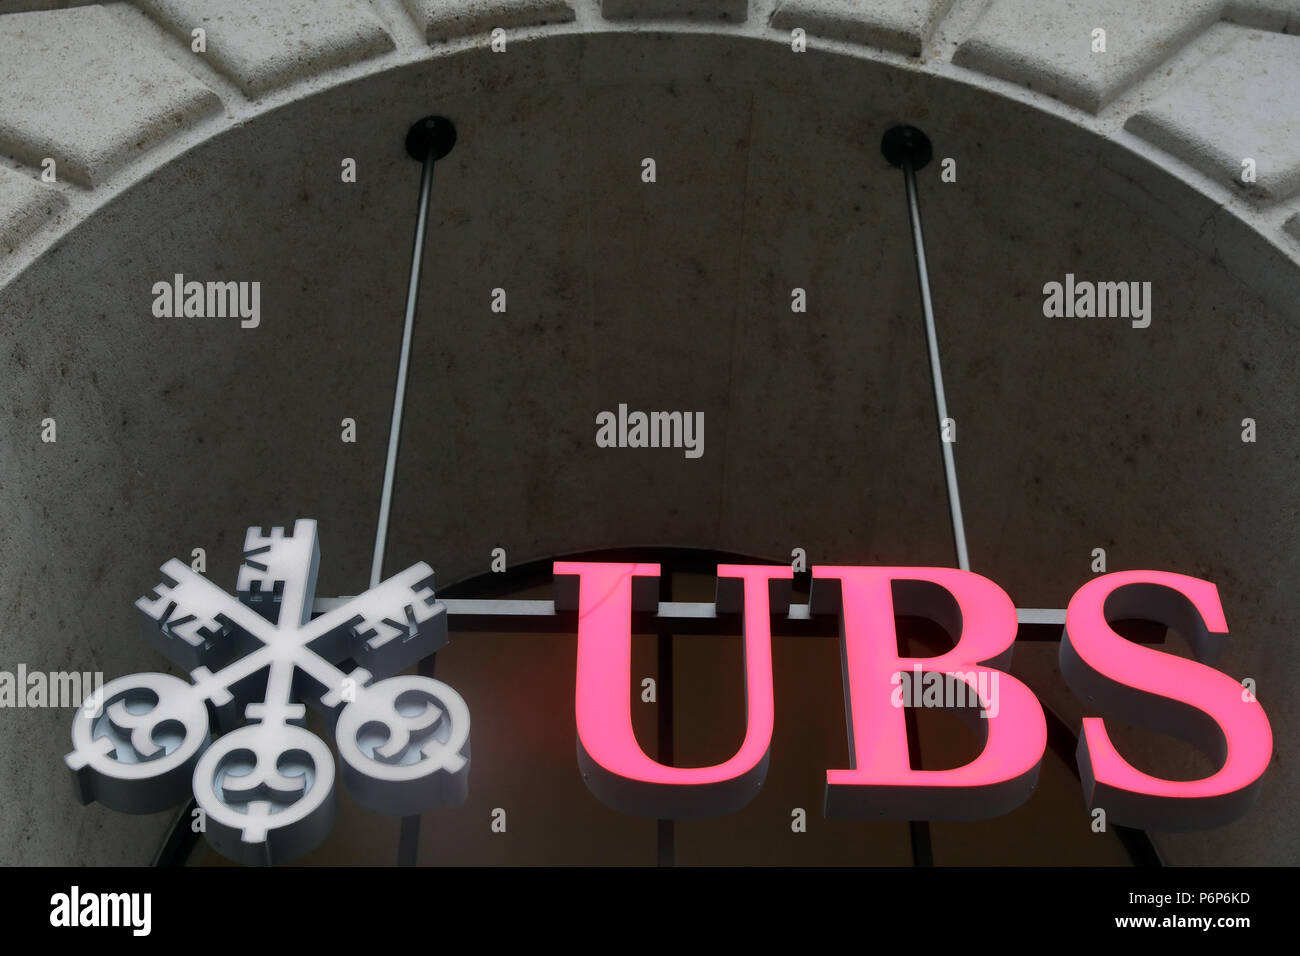 La banque suisse UBS. Bâle. La Suisse. Photo Stock